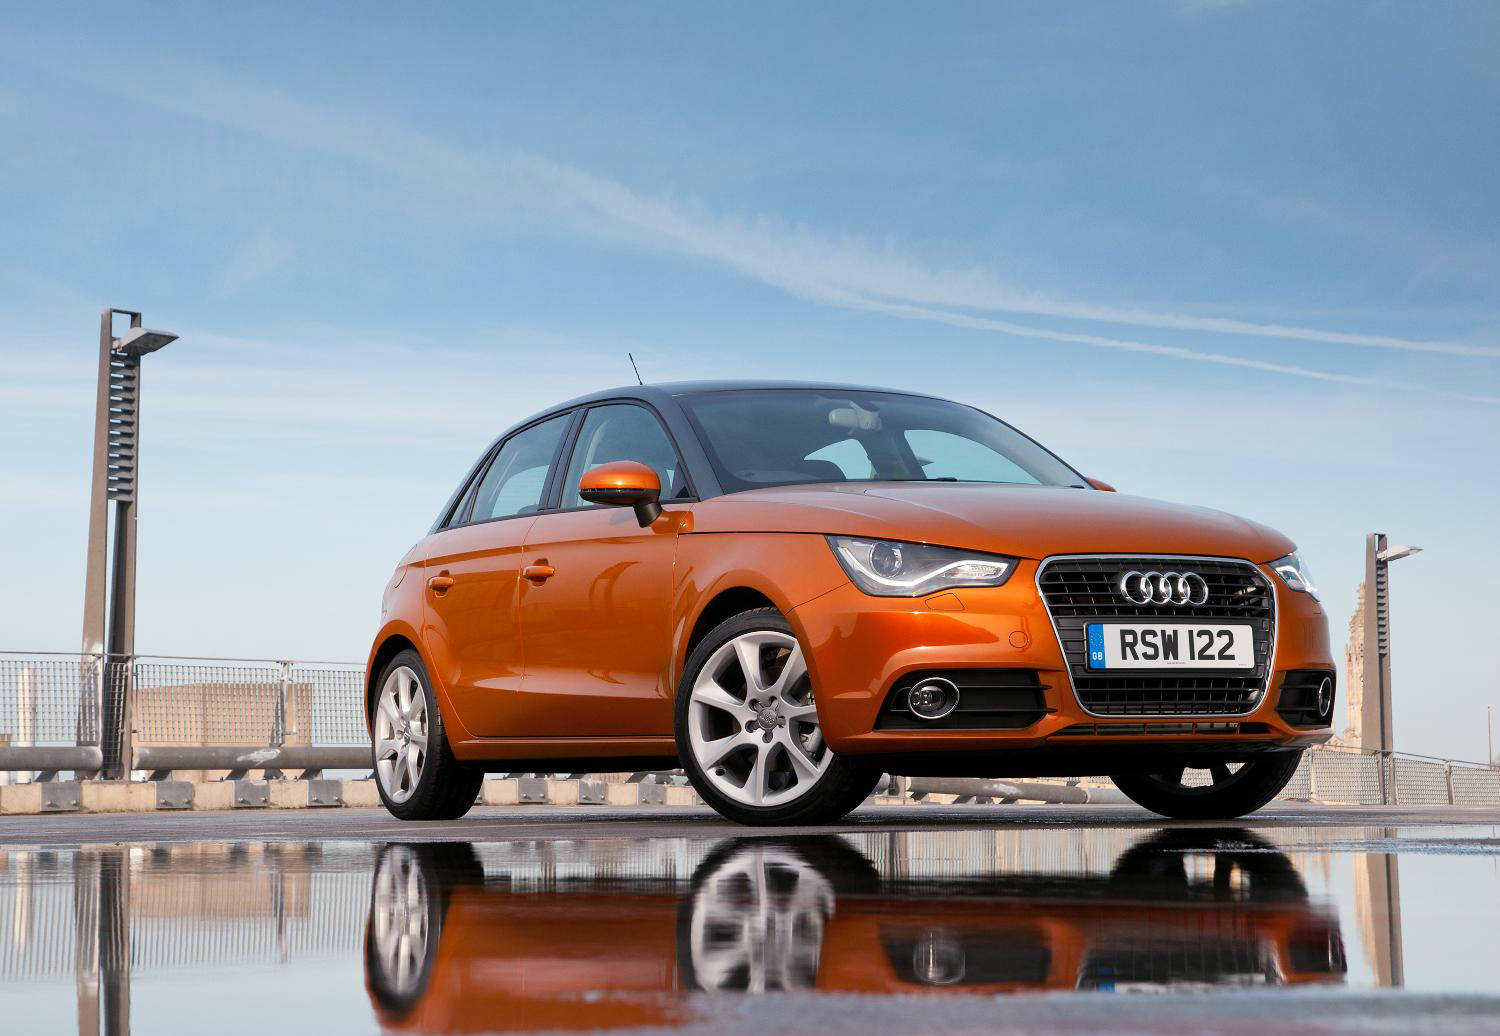 image of a orange audi a1 car exterior